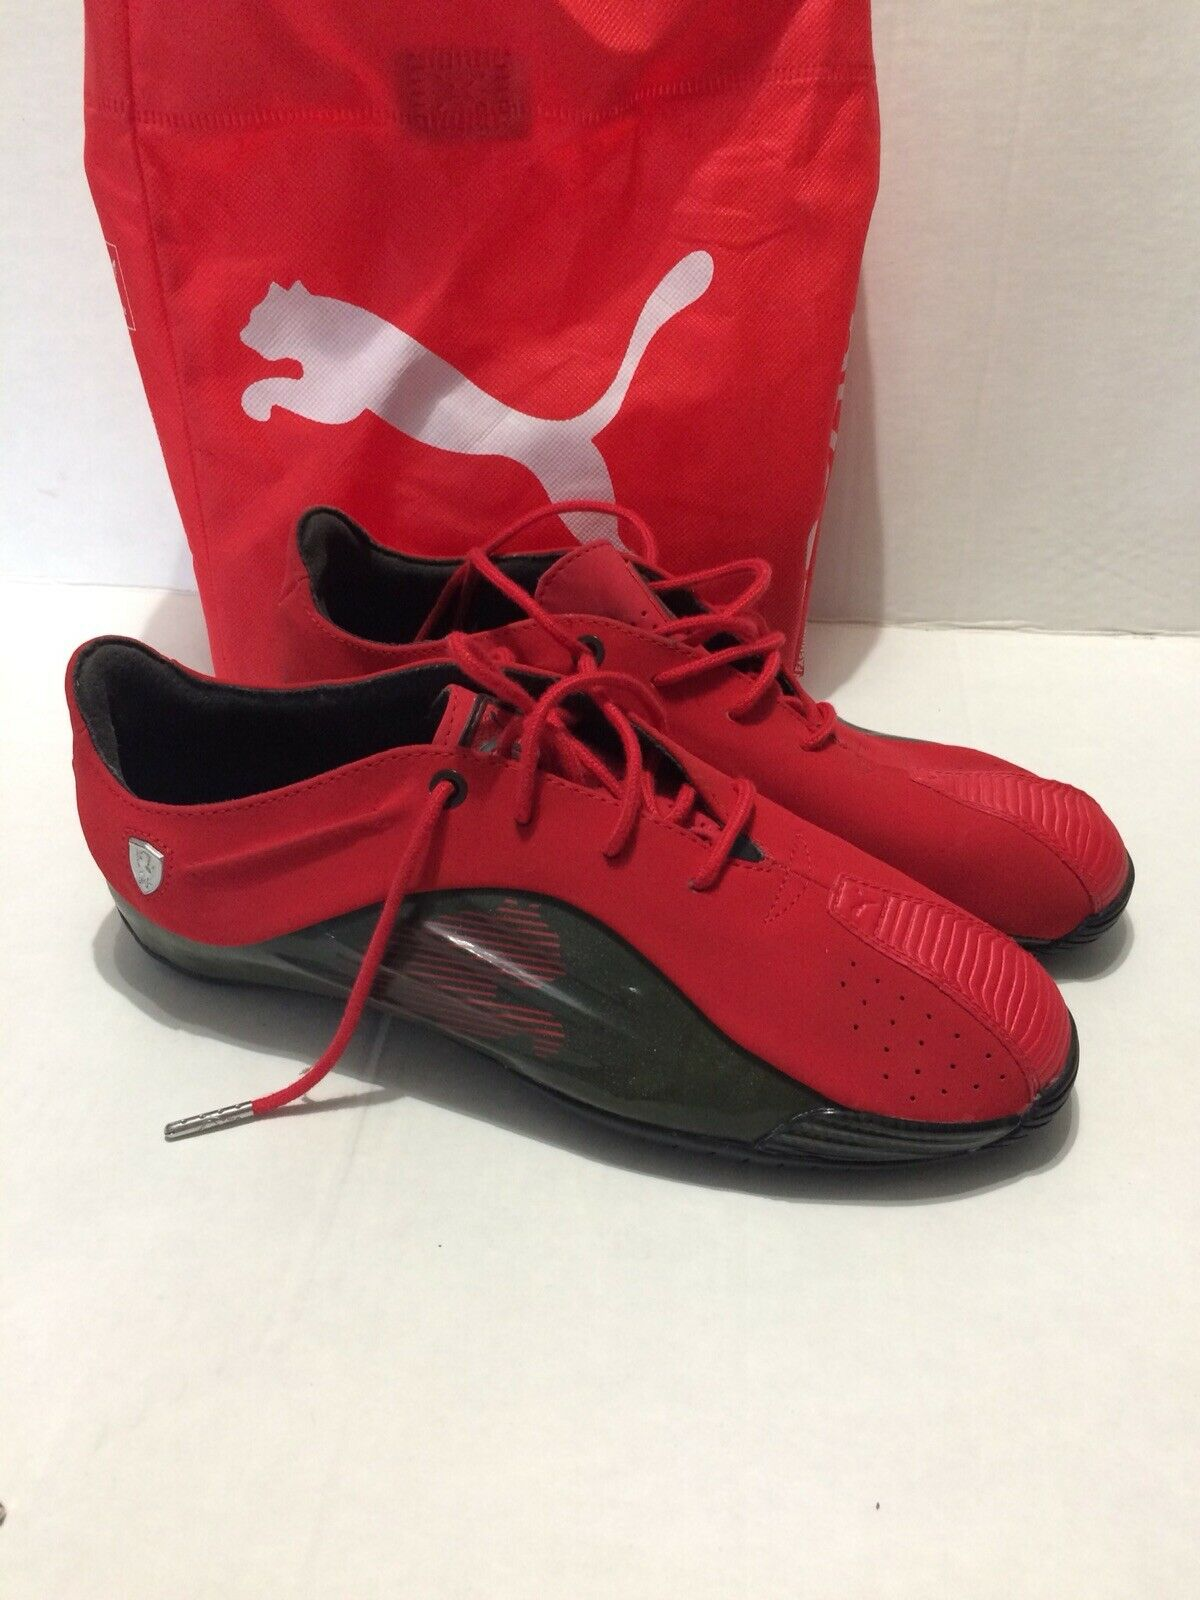 Authentic Puma Ferrari GT Racing shoes, Red Suede, Silver (Size 8) 020042972